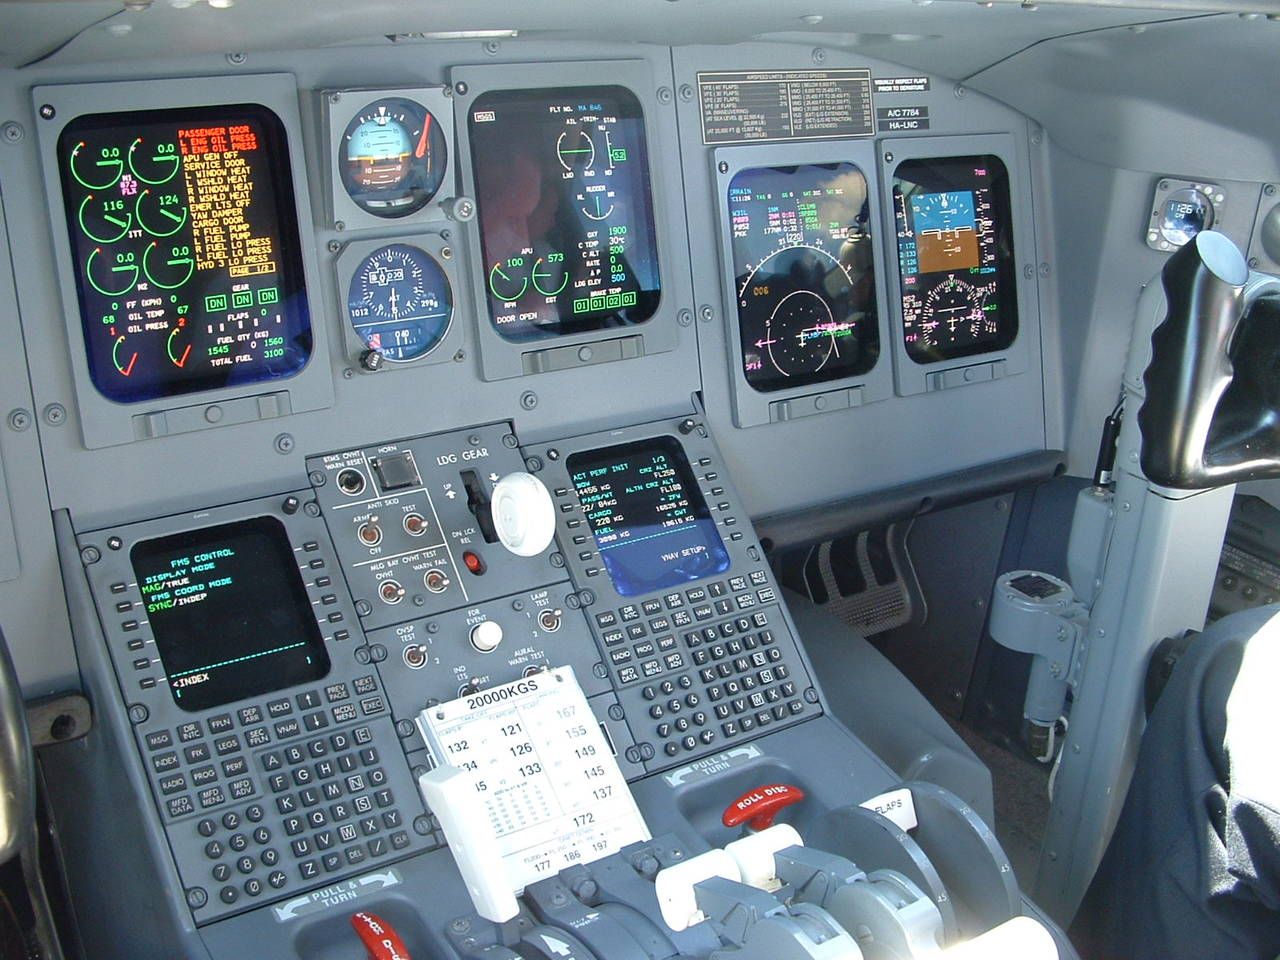 Aviation Labeling And Best Practices For Aircraft Maintenance Wiring Standards Avionics Refers To The Electronic Systems Used On An Avionic Include Communications Navigation Monitoring Flight Control